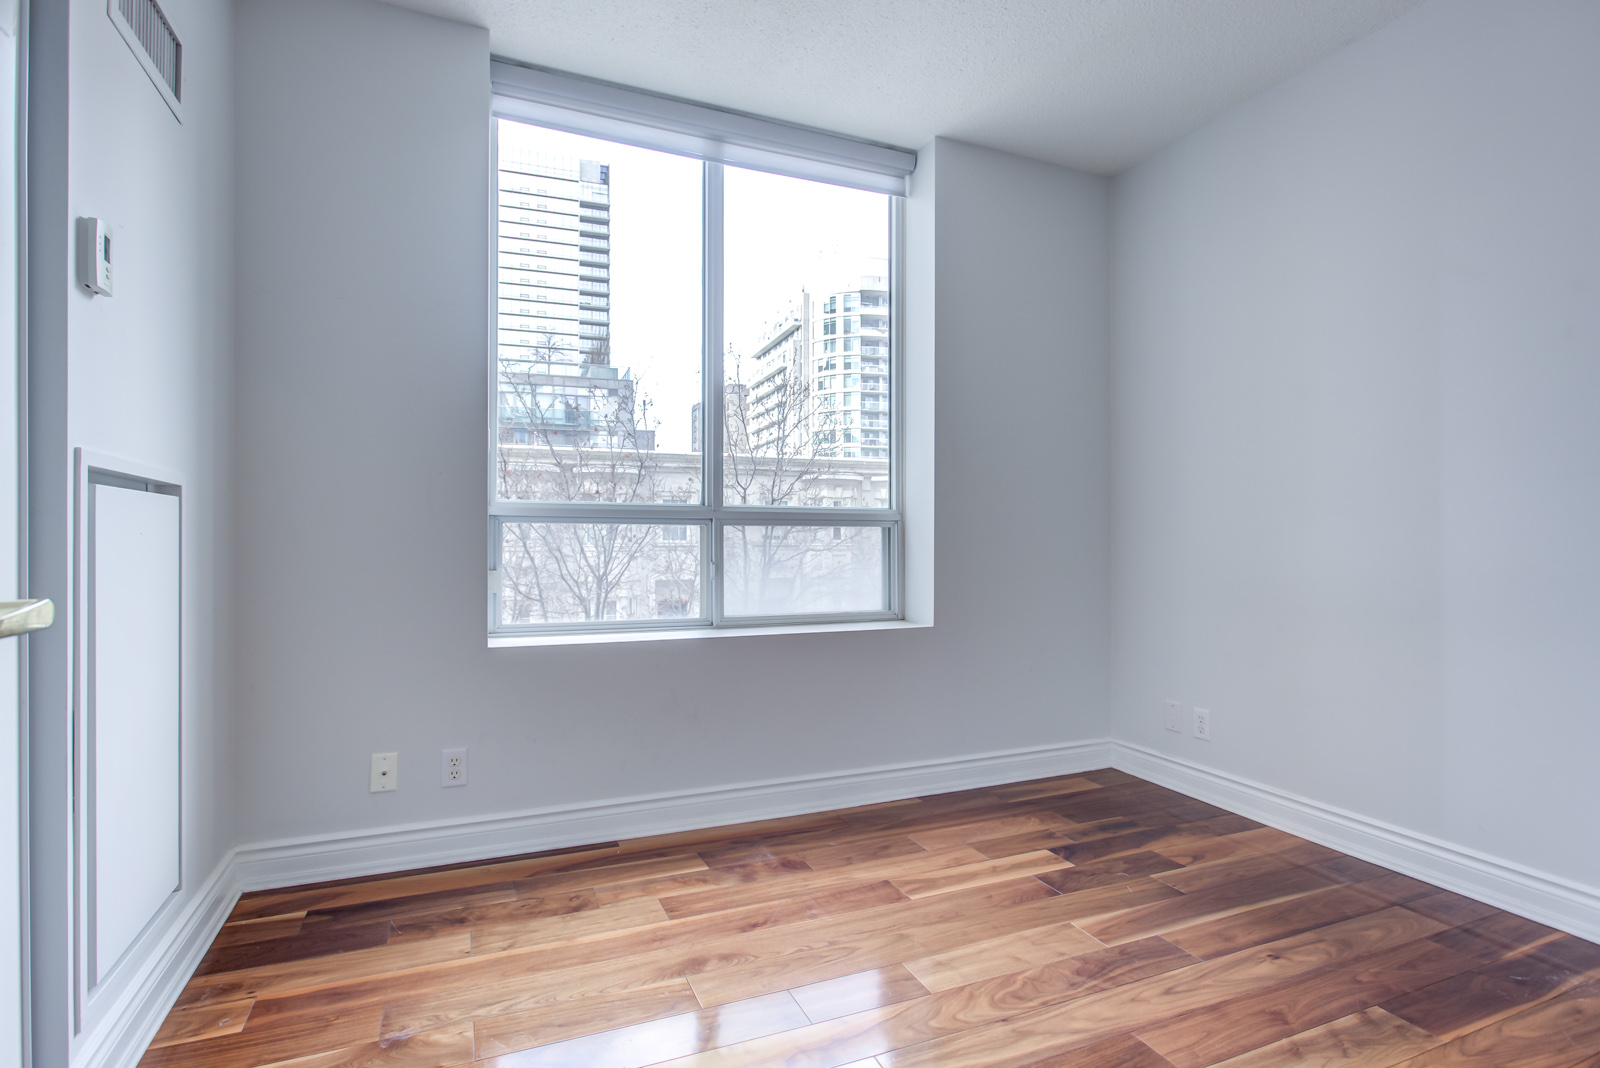 Bedroom with newly-painted gray walls and shiny dark brown hardwood floor at 20 Collier St Unit 408.